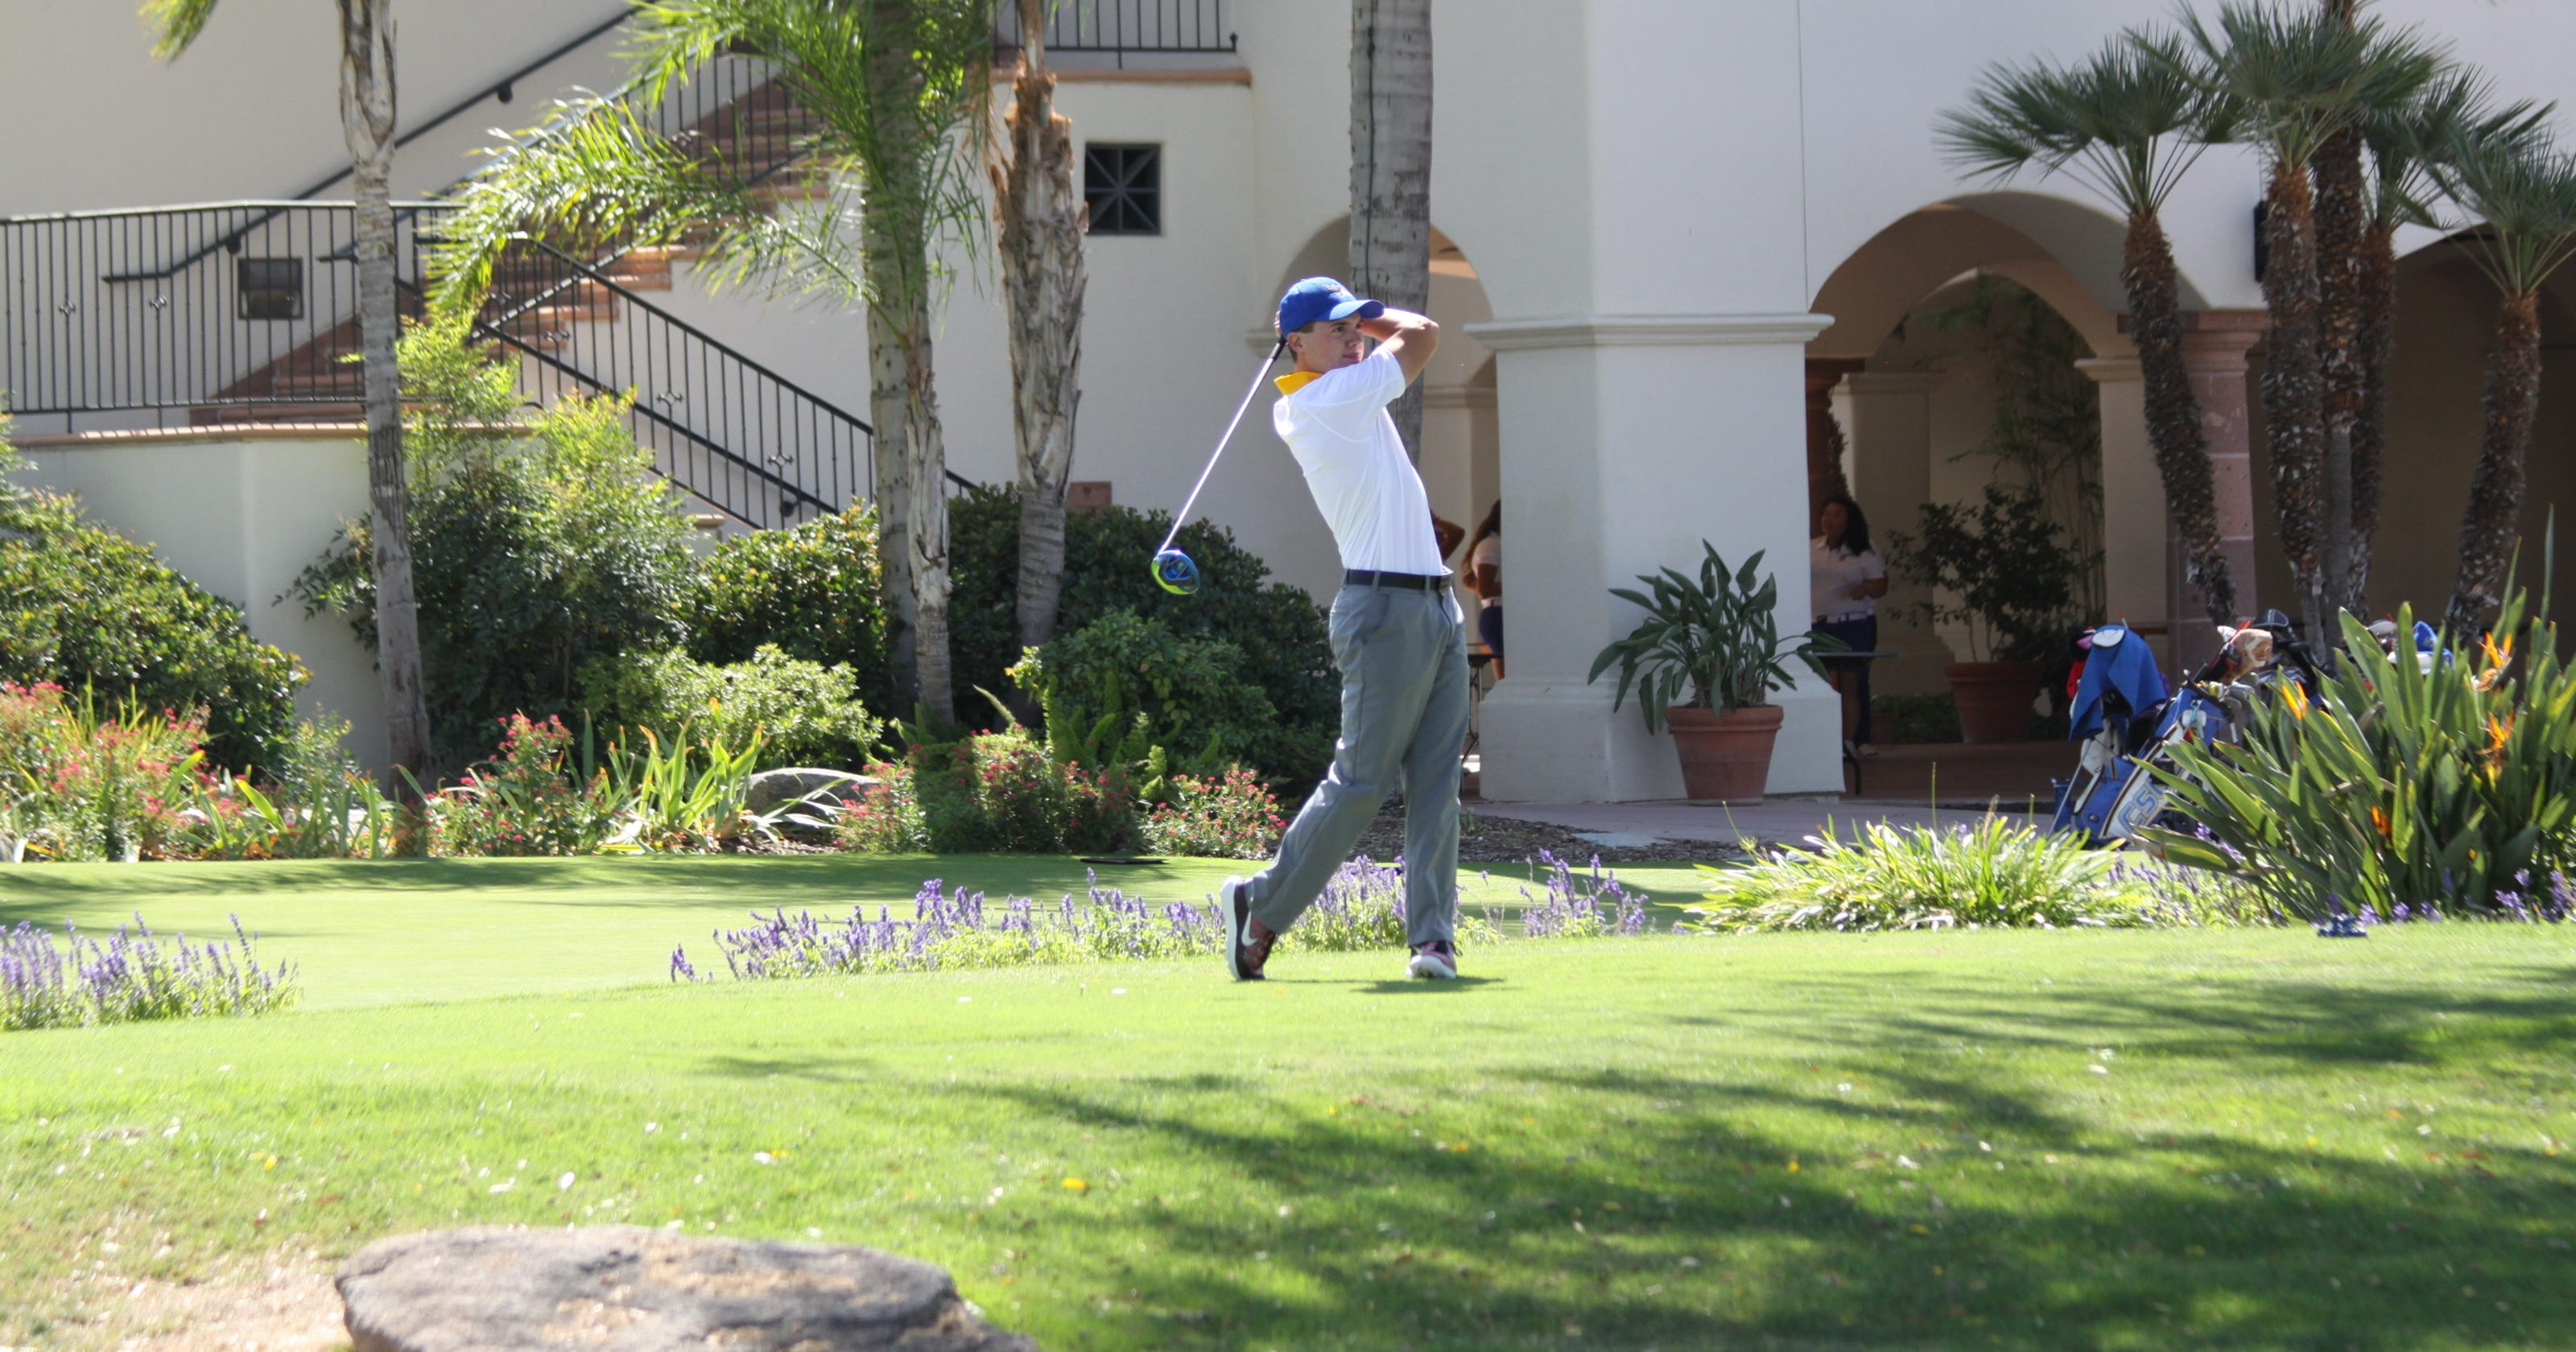 Long game: One Simpson golfer lived his dream until life